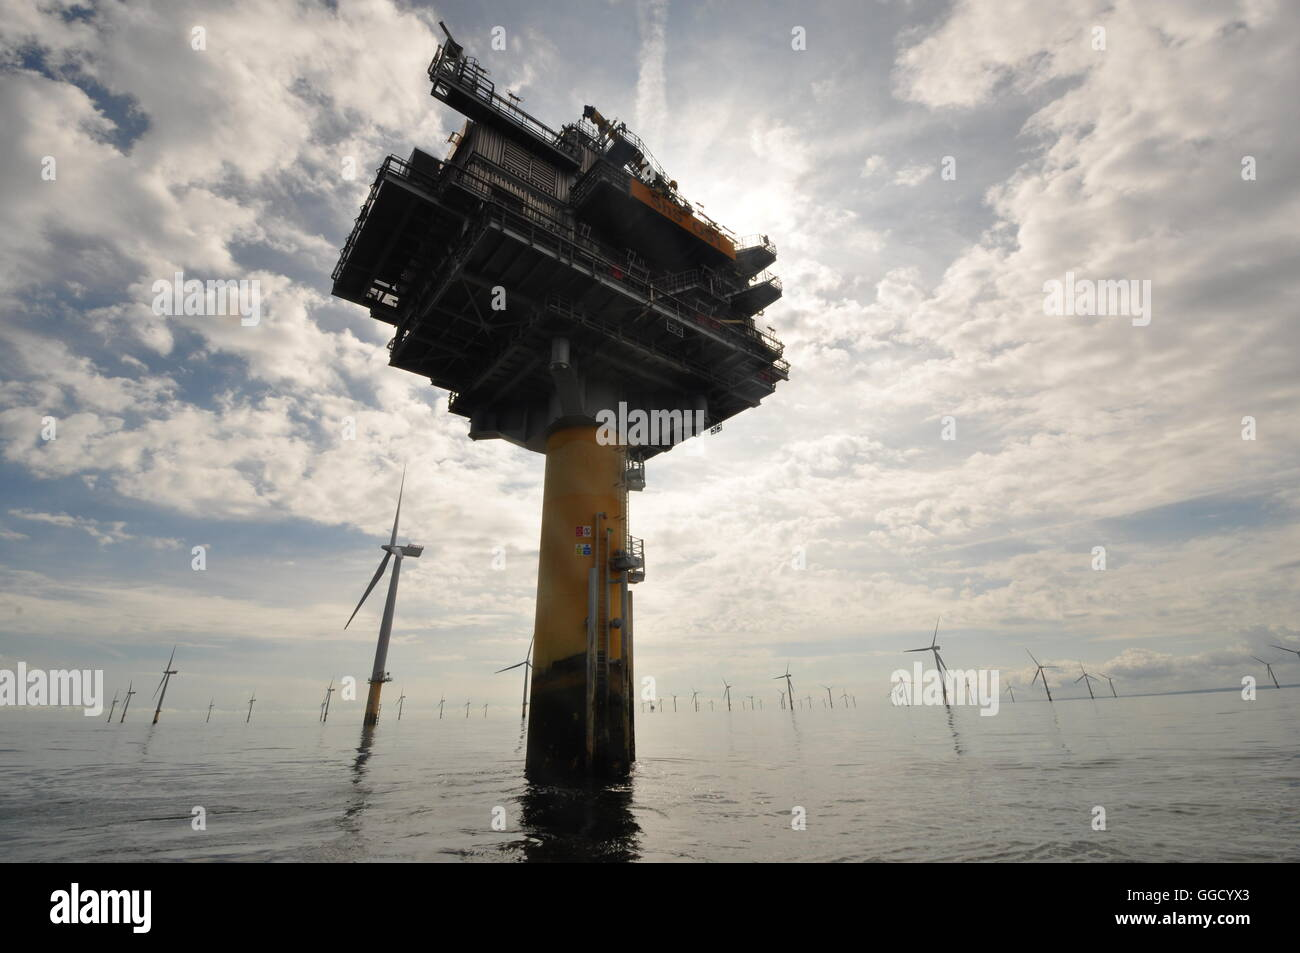 one of two substations at the Sheringham Shoal off-shore wind farm off the north Norfolk coast. UK - Stock Image